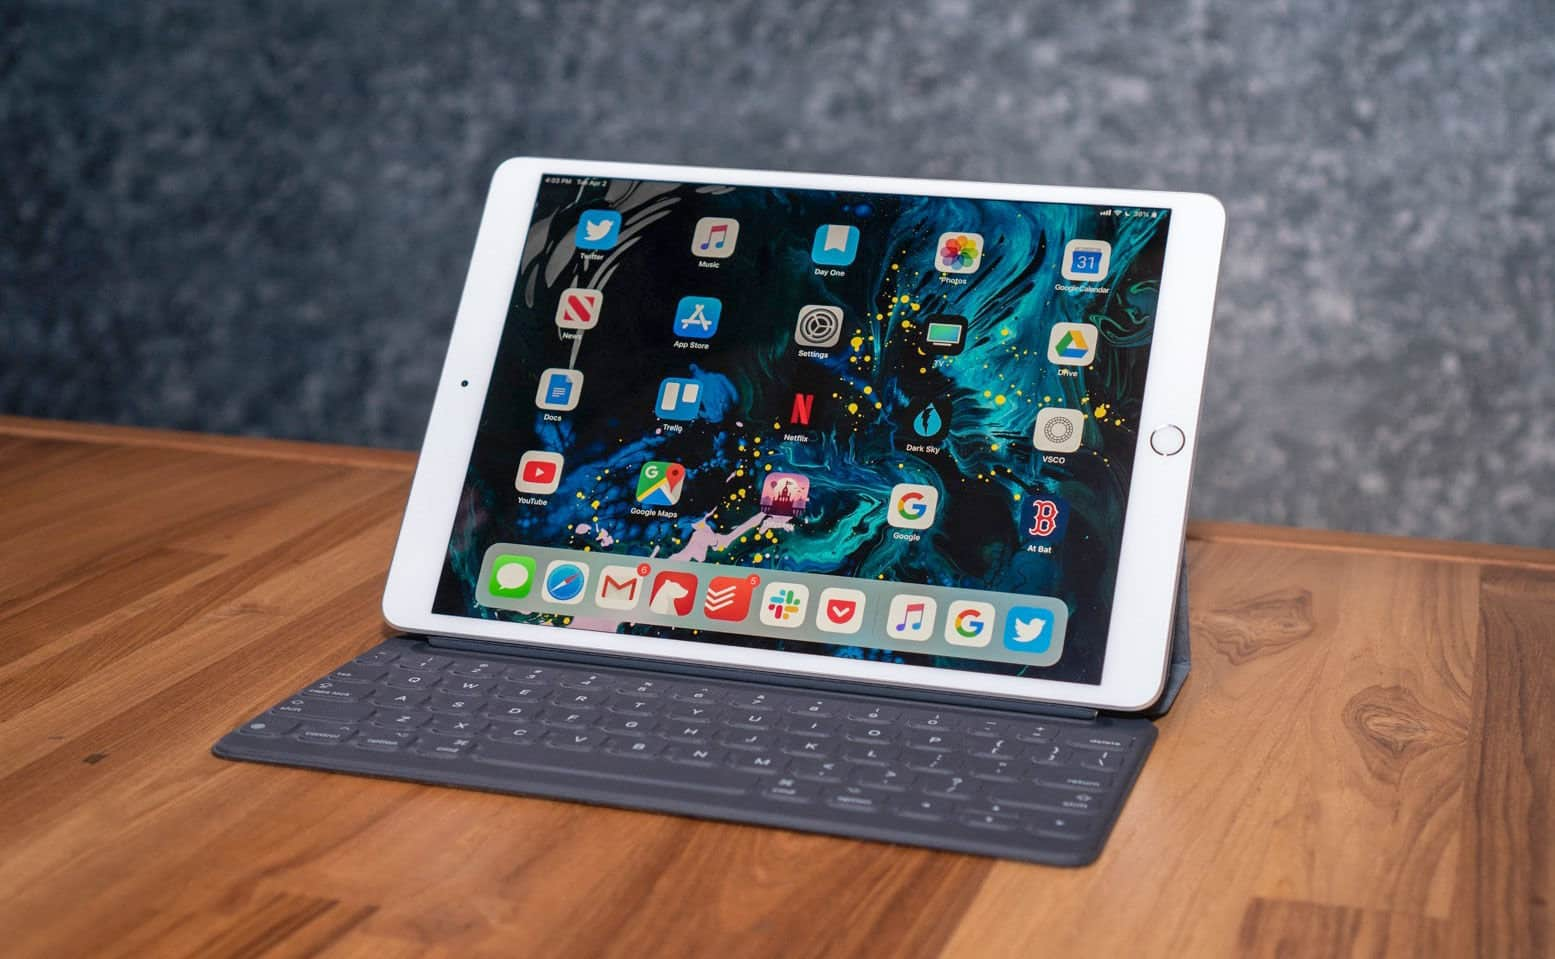 Crazy! The 10.5 inch iPad Air Model is $99 Off Right Now! But You Need To Hurry Up! | TheAppleByte